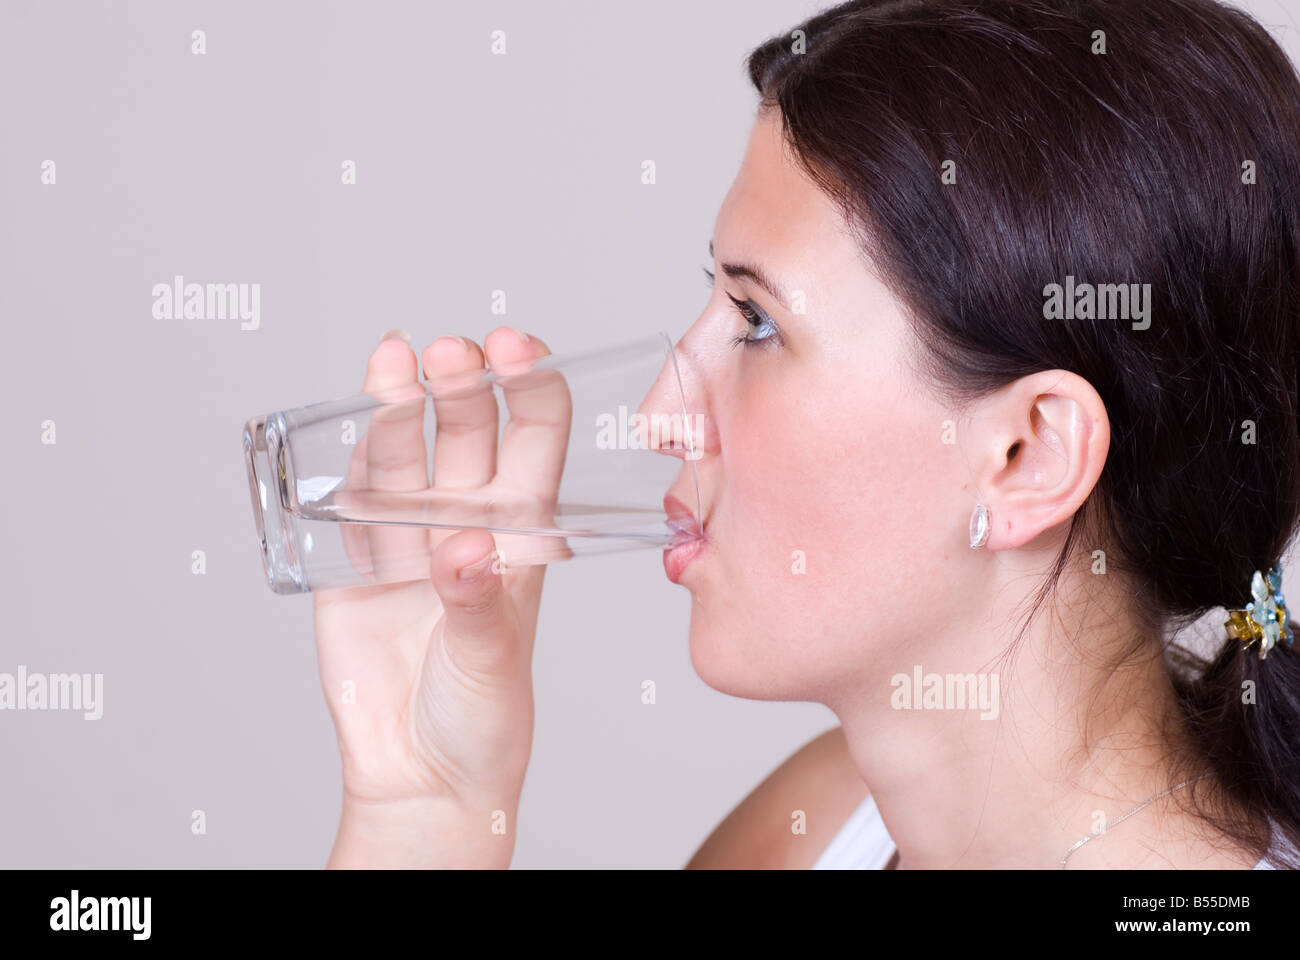 Woman drinking water - Stock Image